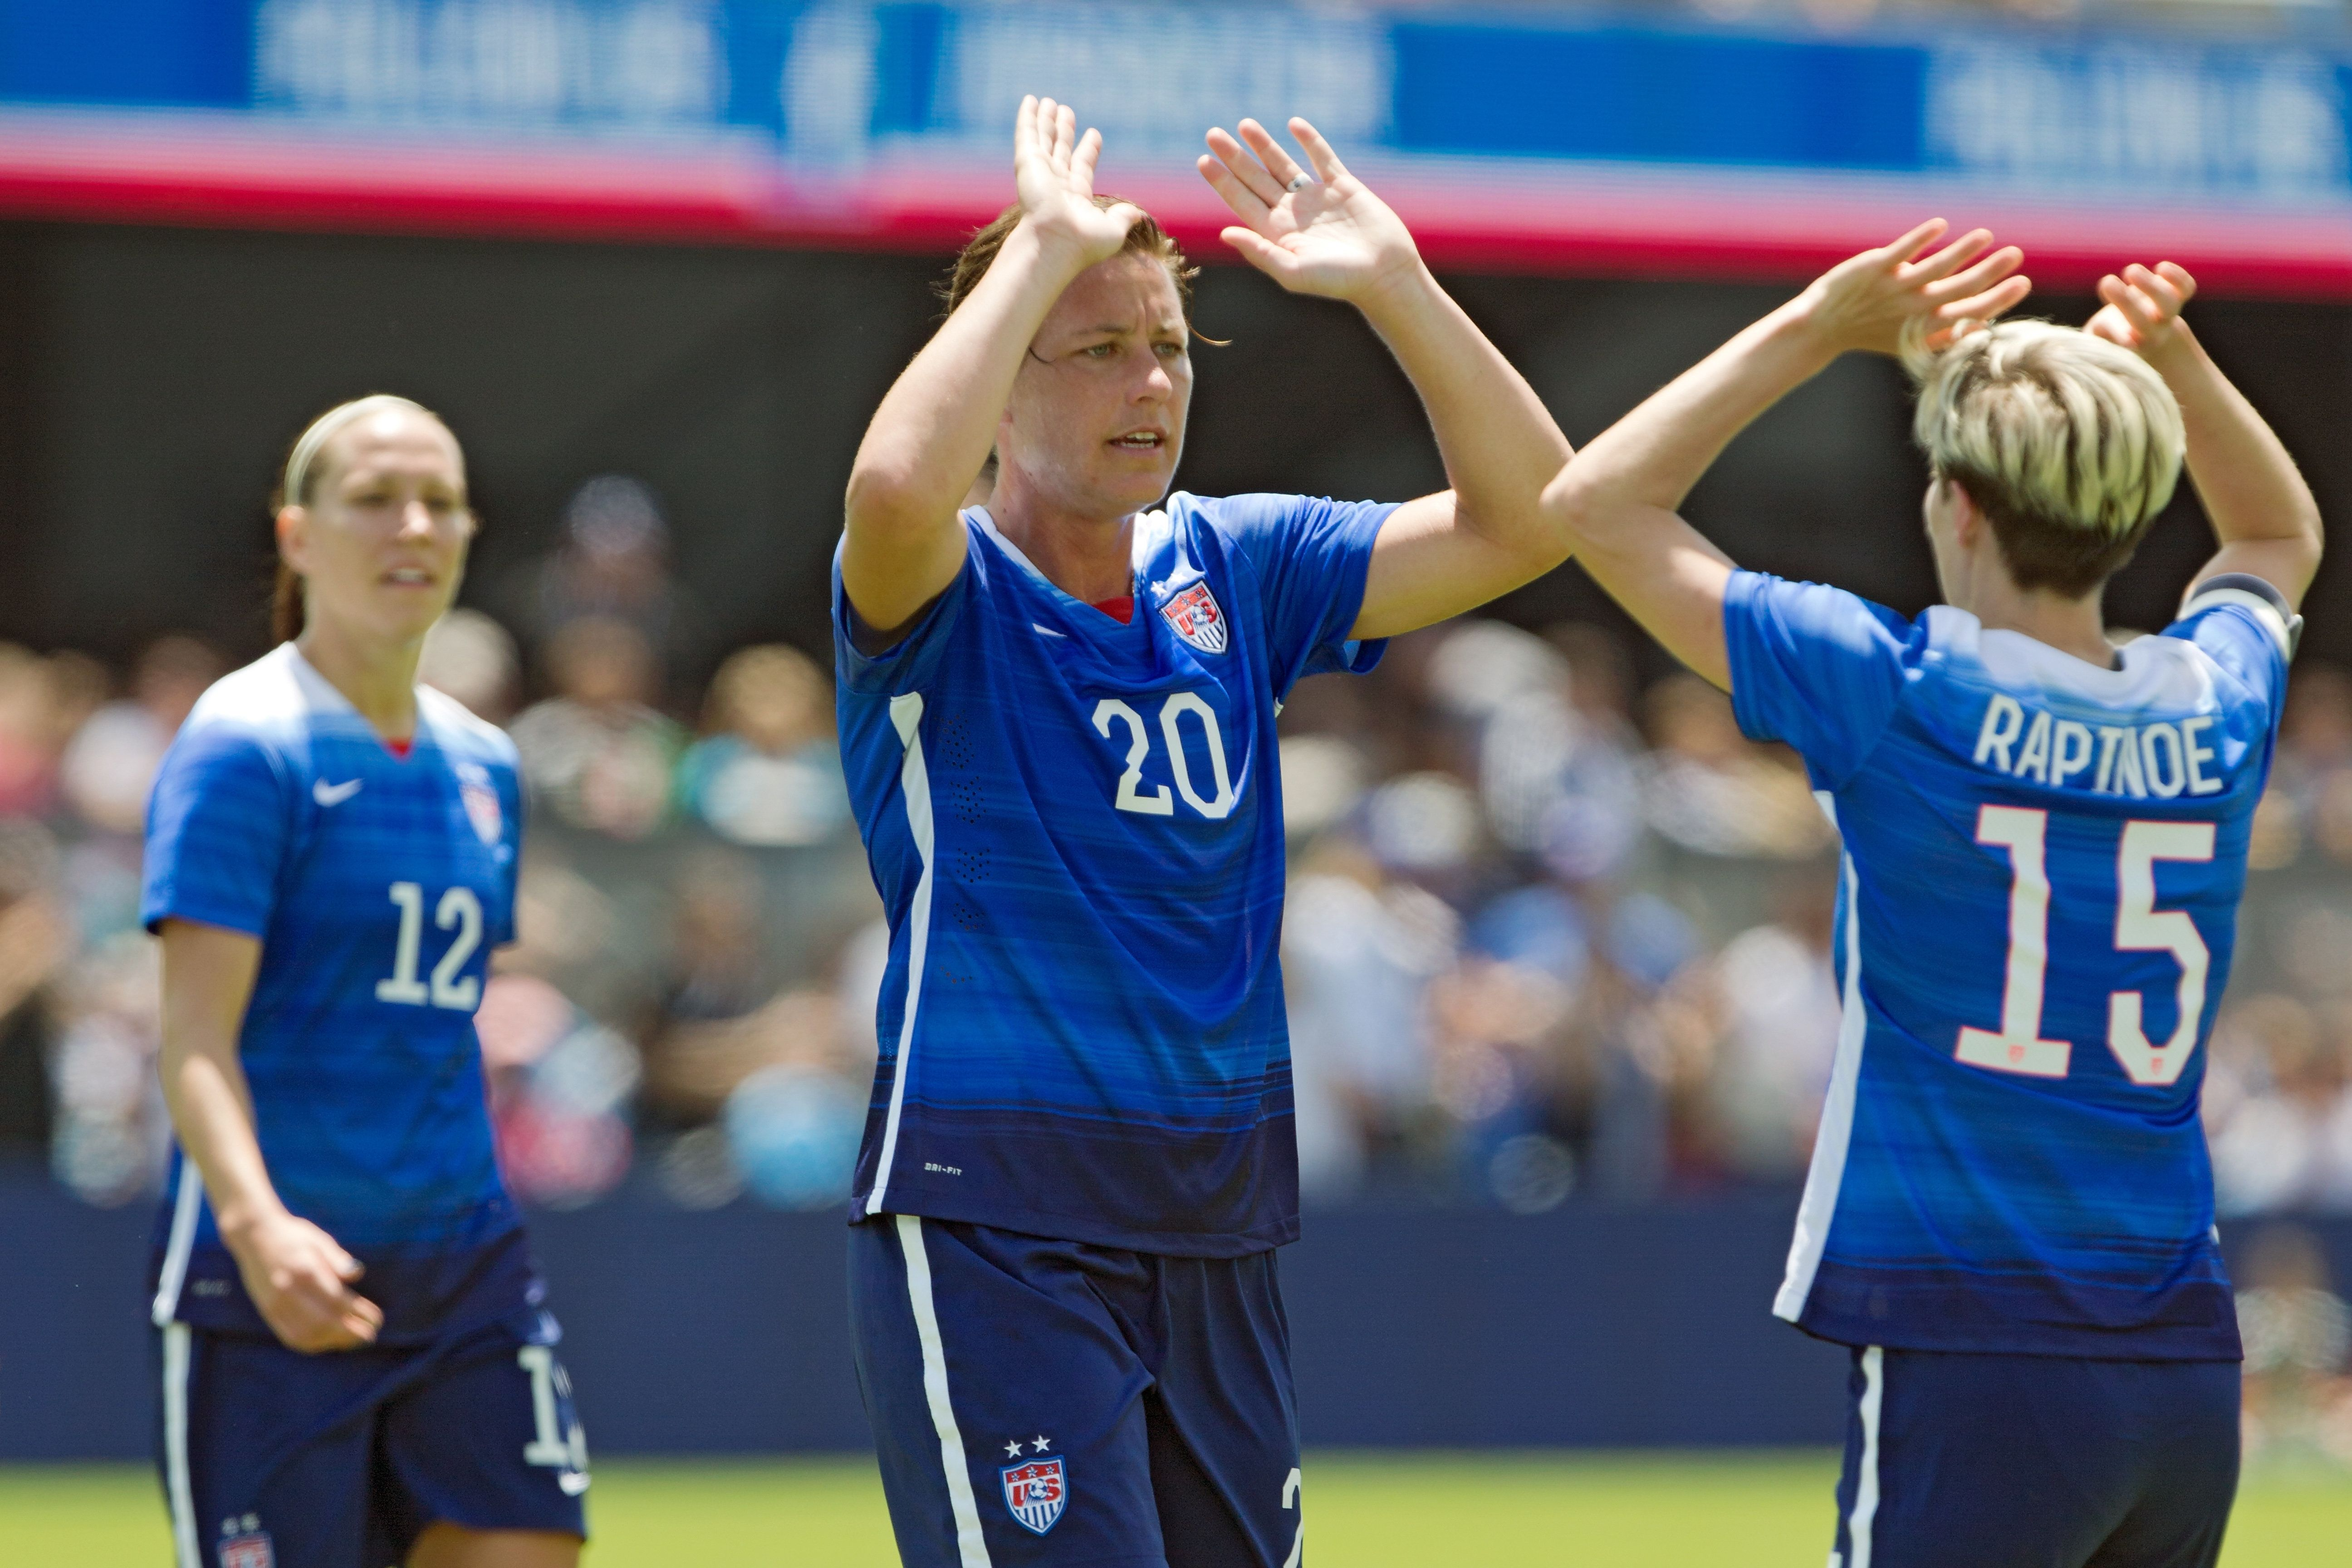 SAN JOSE, CA - MAY 10:  Megan Rapinoe #15 congratulates Abby Wambach #20 of the United States after scoring her second goal against Ireland in the first half of their international friendly match on May 10, 2015 at Avaya Stadium in San Jose, California.  The U.S. won 3-0.  (Photo by Brian Bahr/Getty Images)